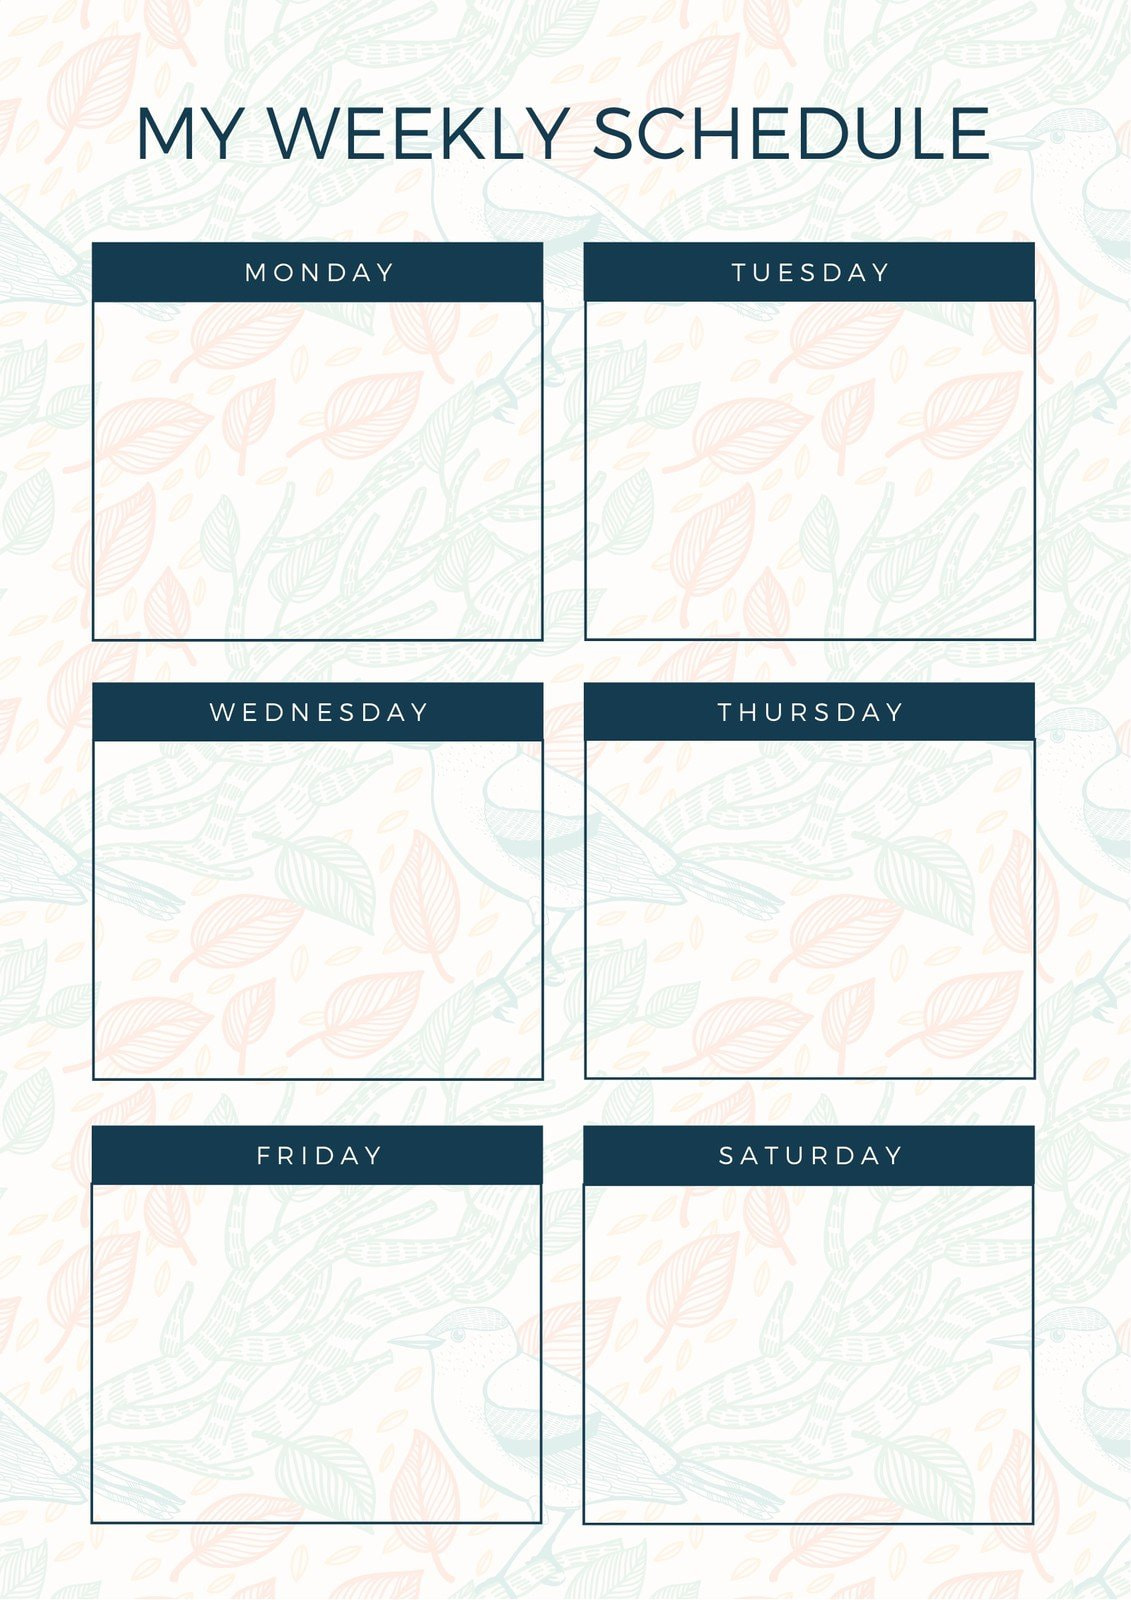 Blue and Cream Patterned Weekly Schedule